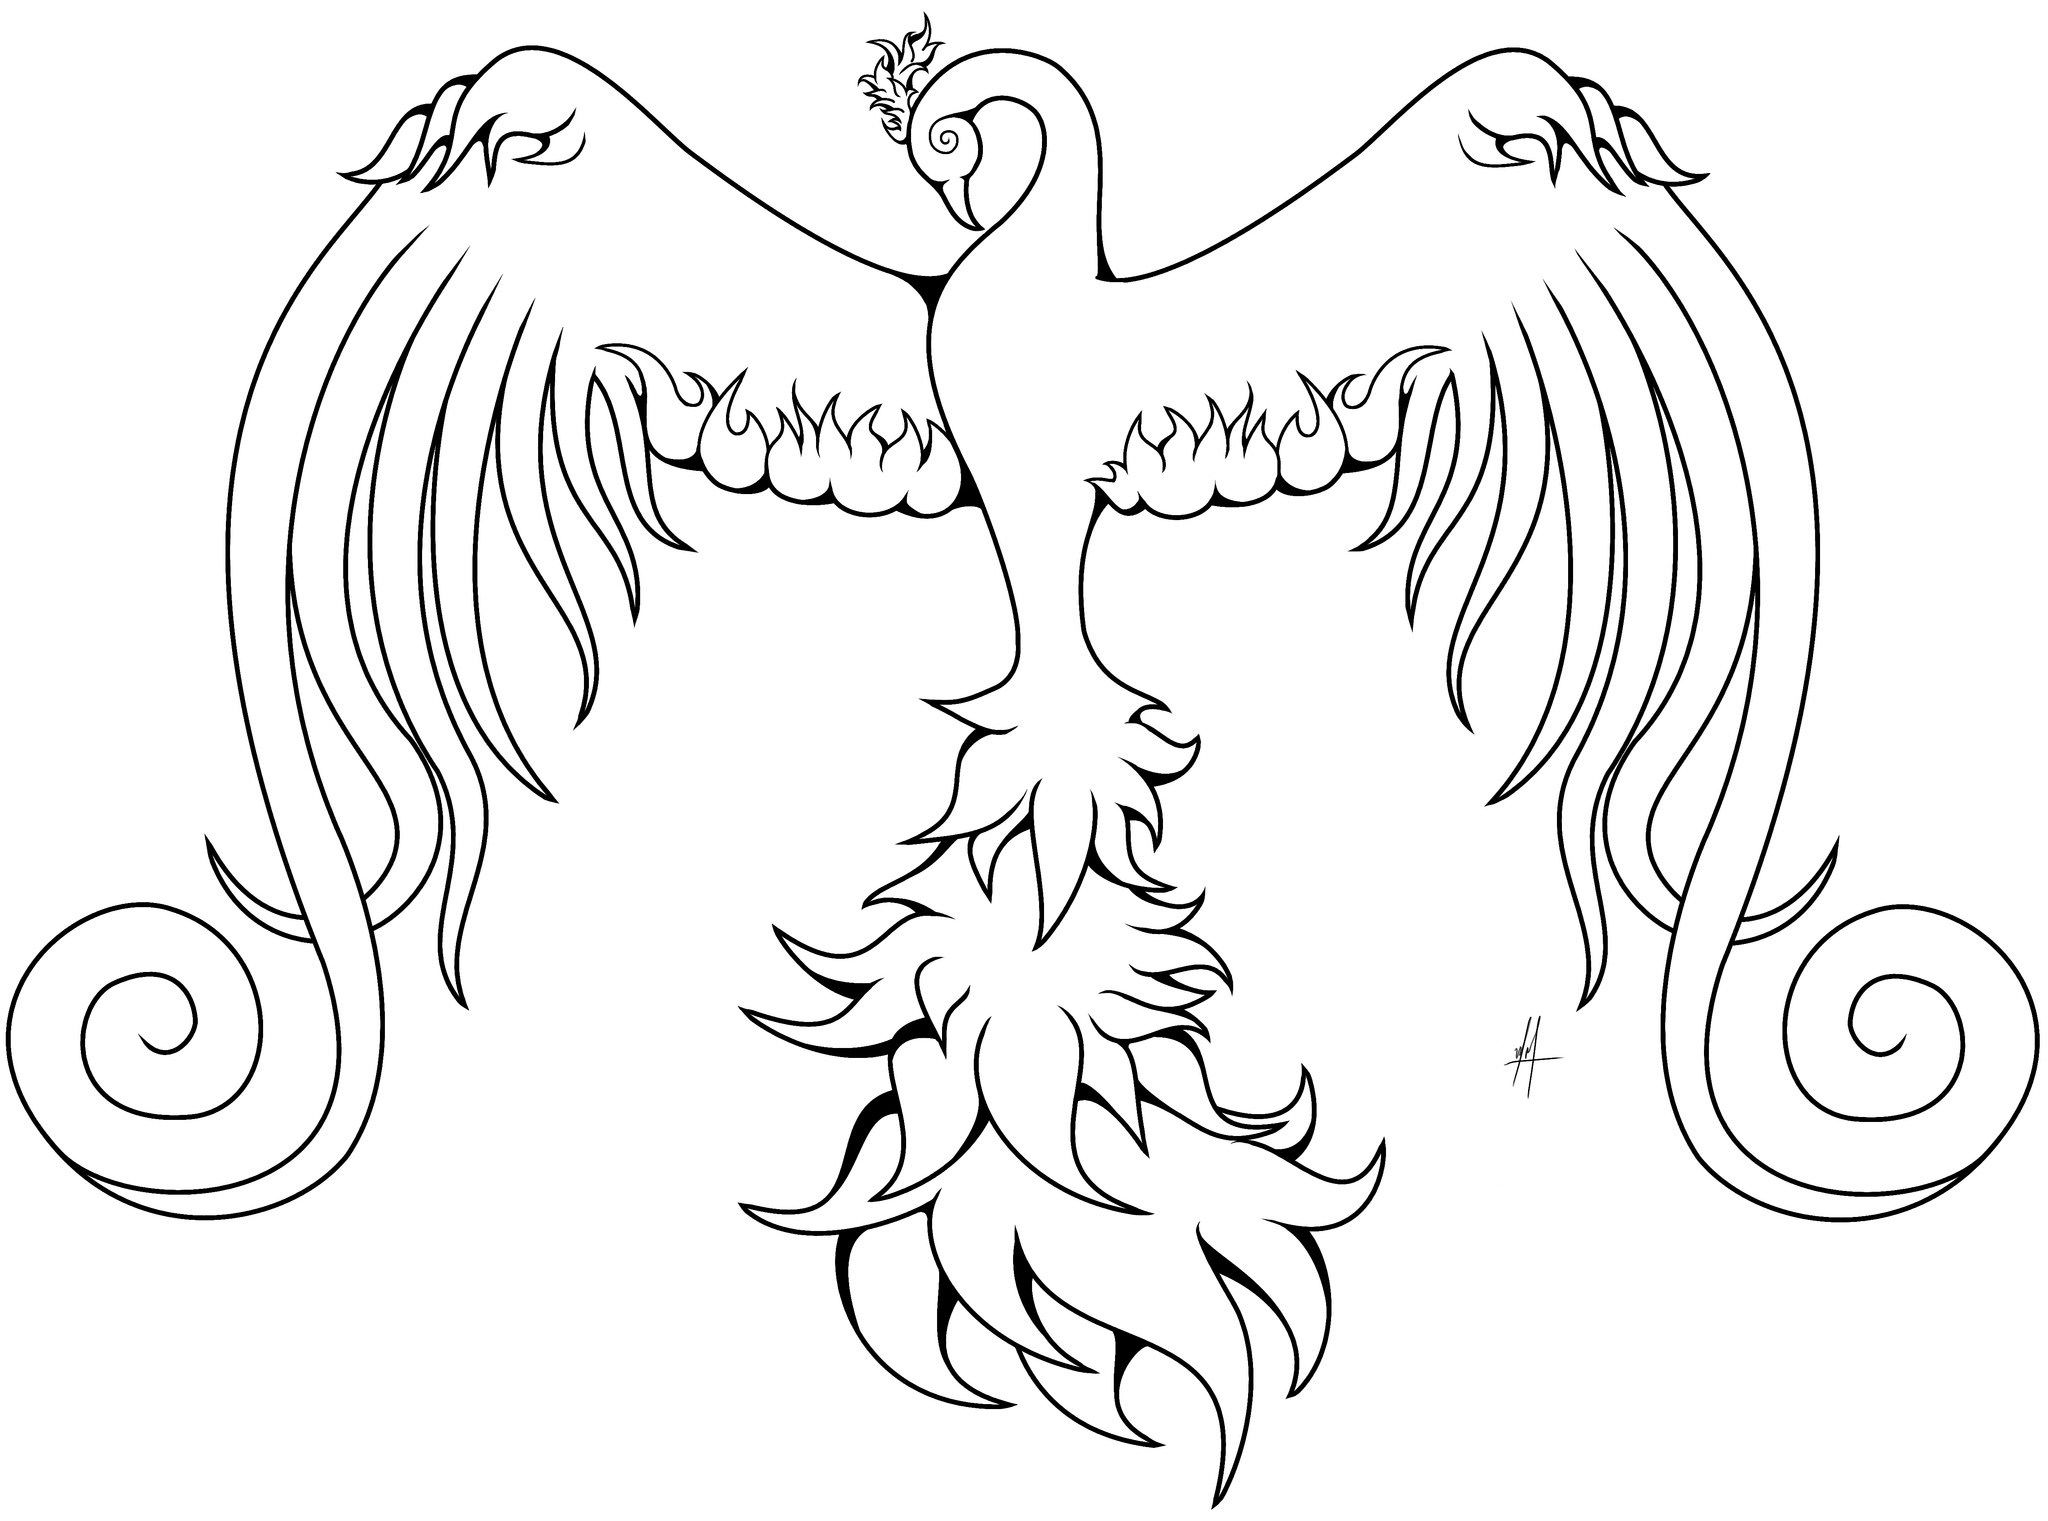 Baby Phoenix Coloring Pages 2 By Kimberly Bird Coloring Pages Pictures Of Phoenix Coloring Pages